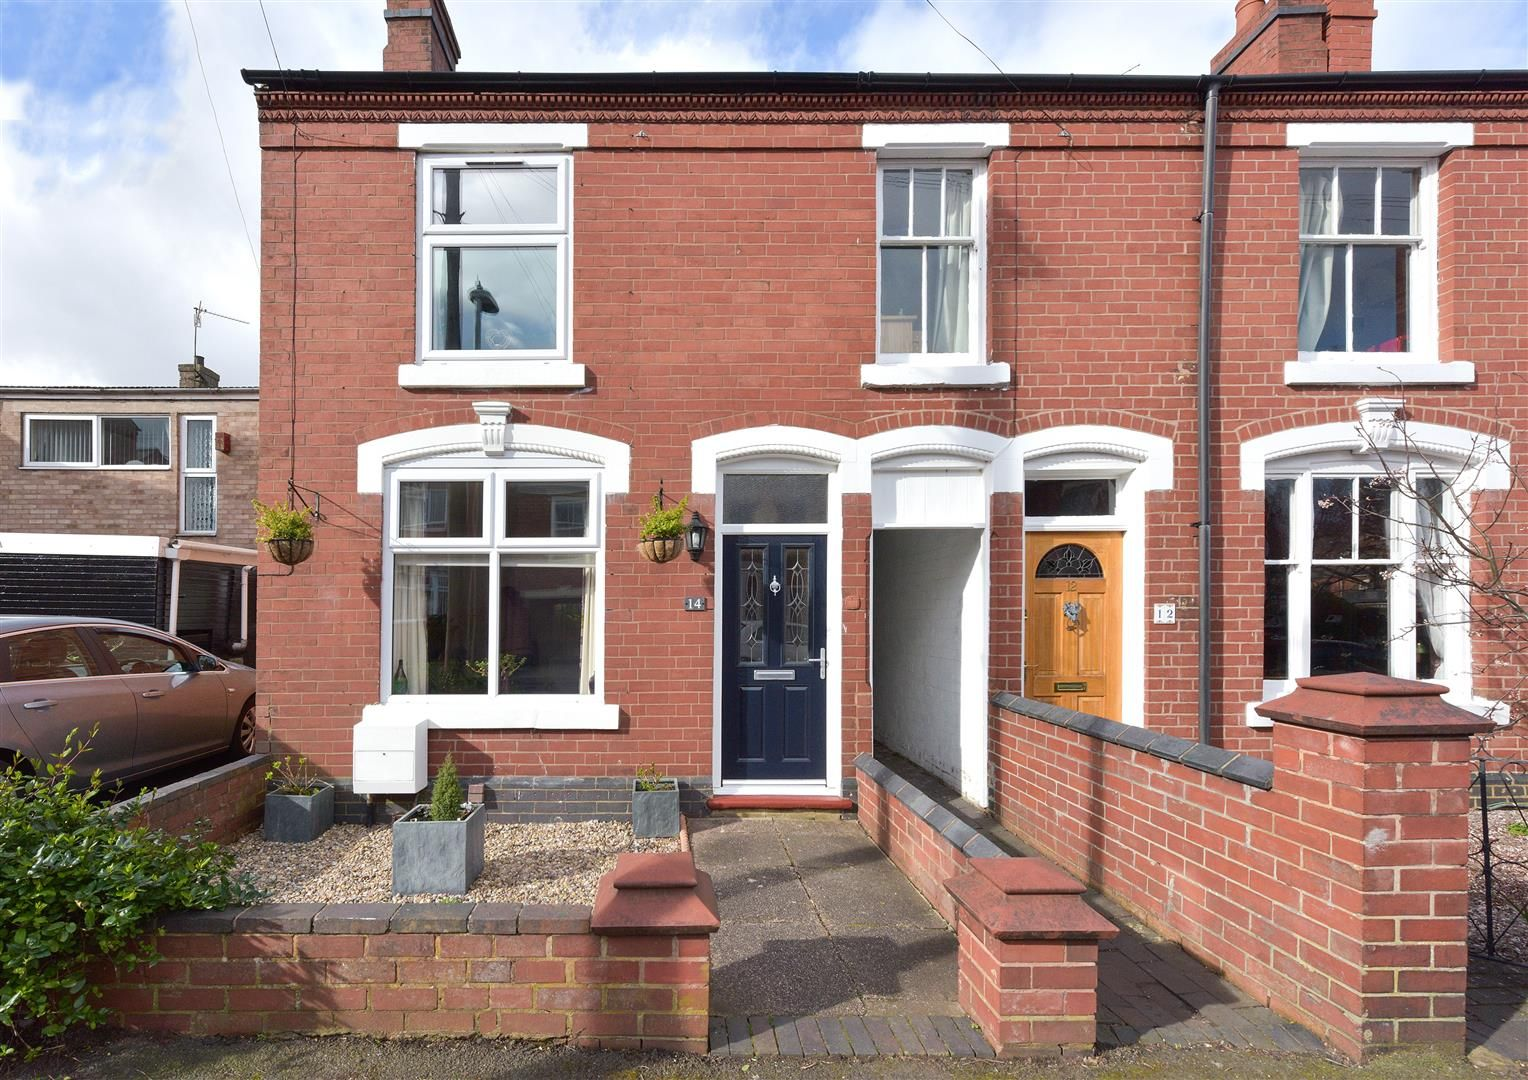 3 bed end-of-terrace for sale 20